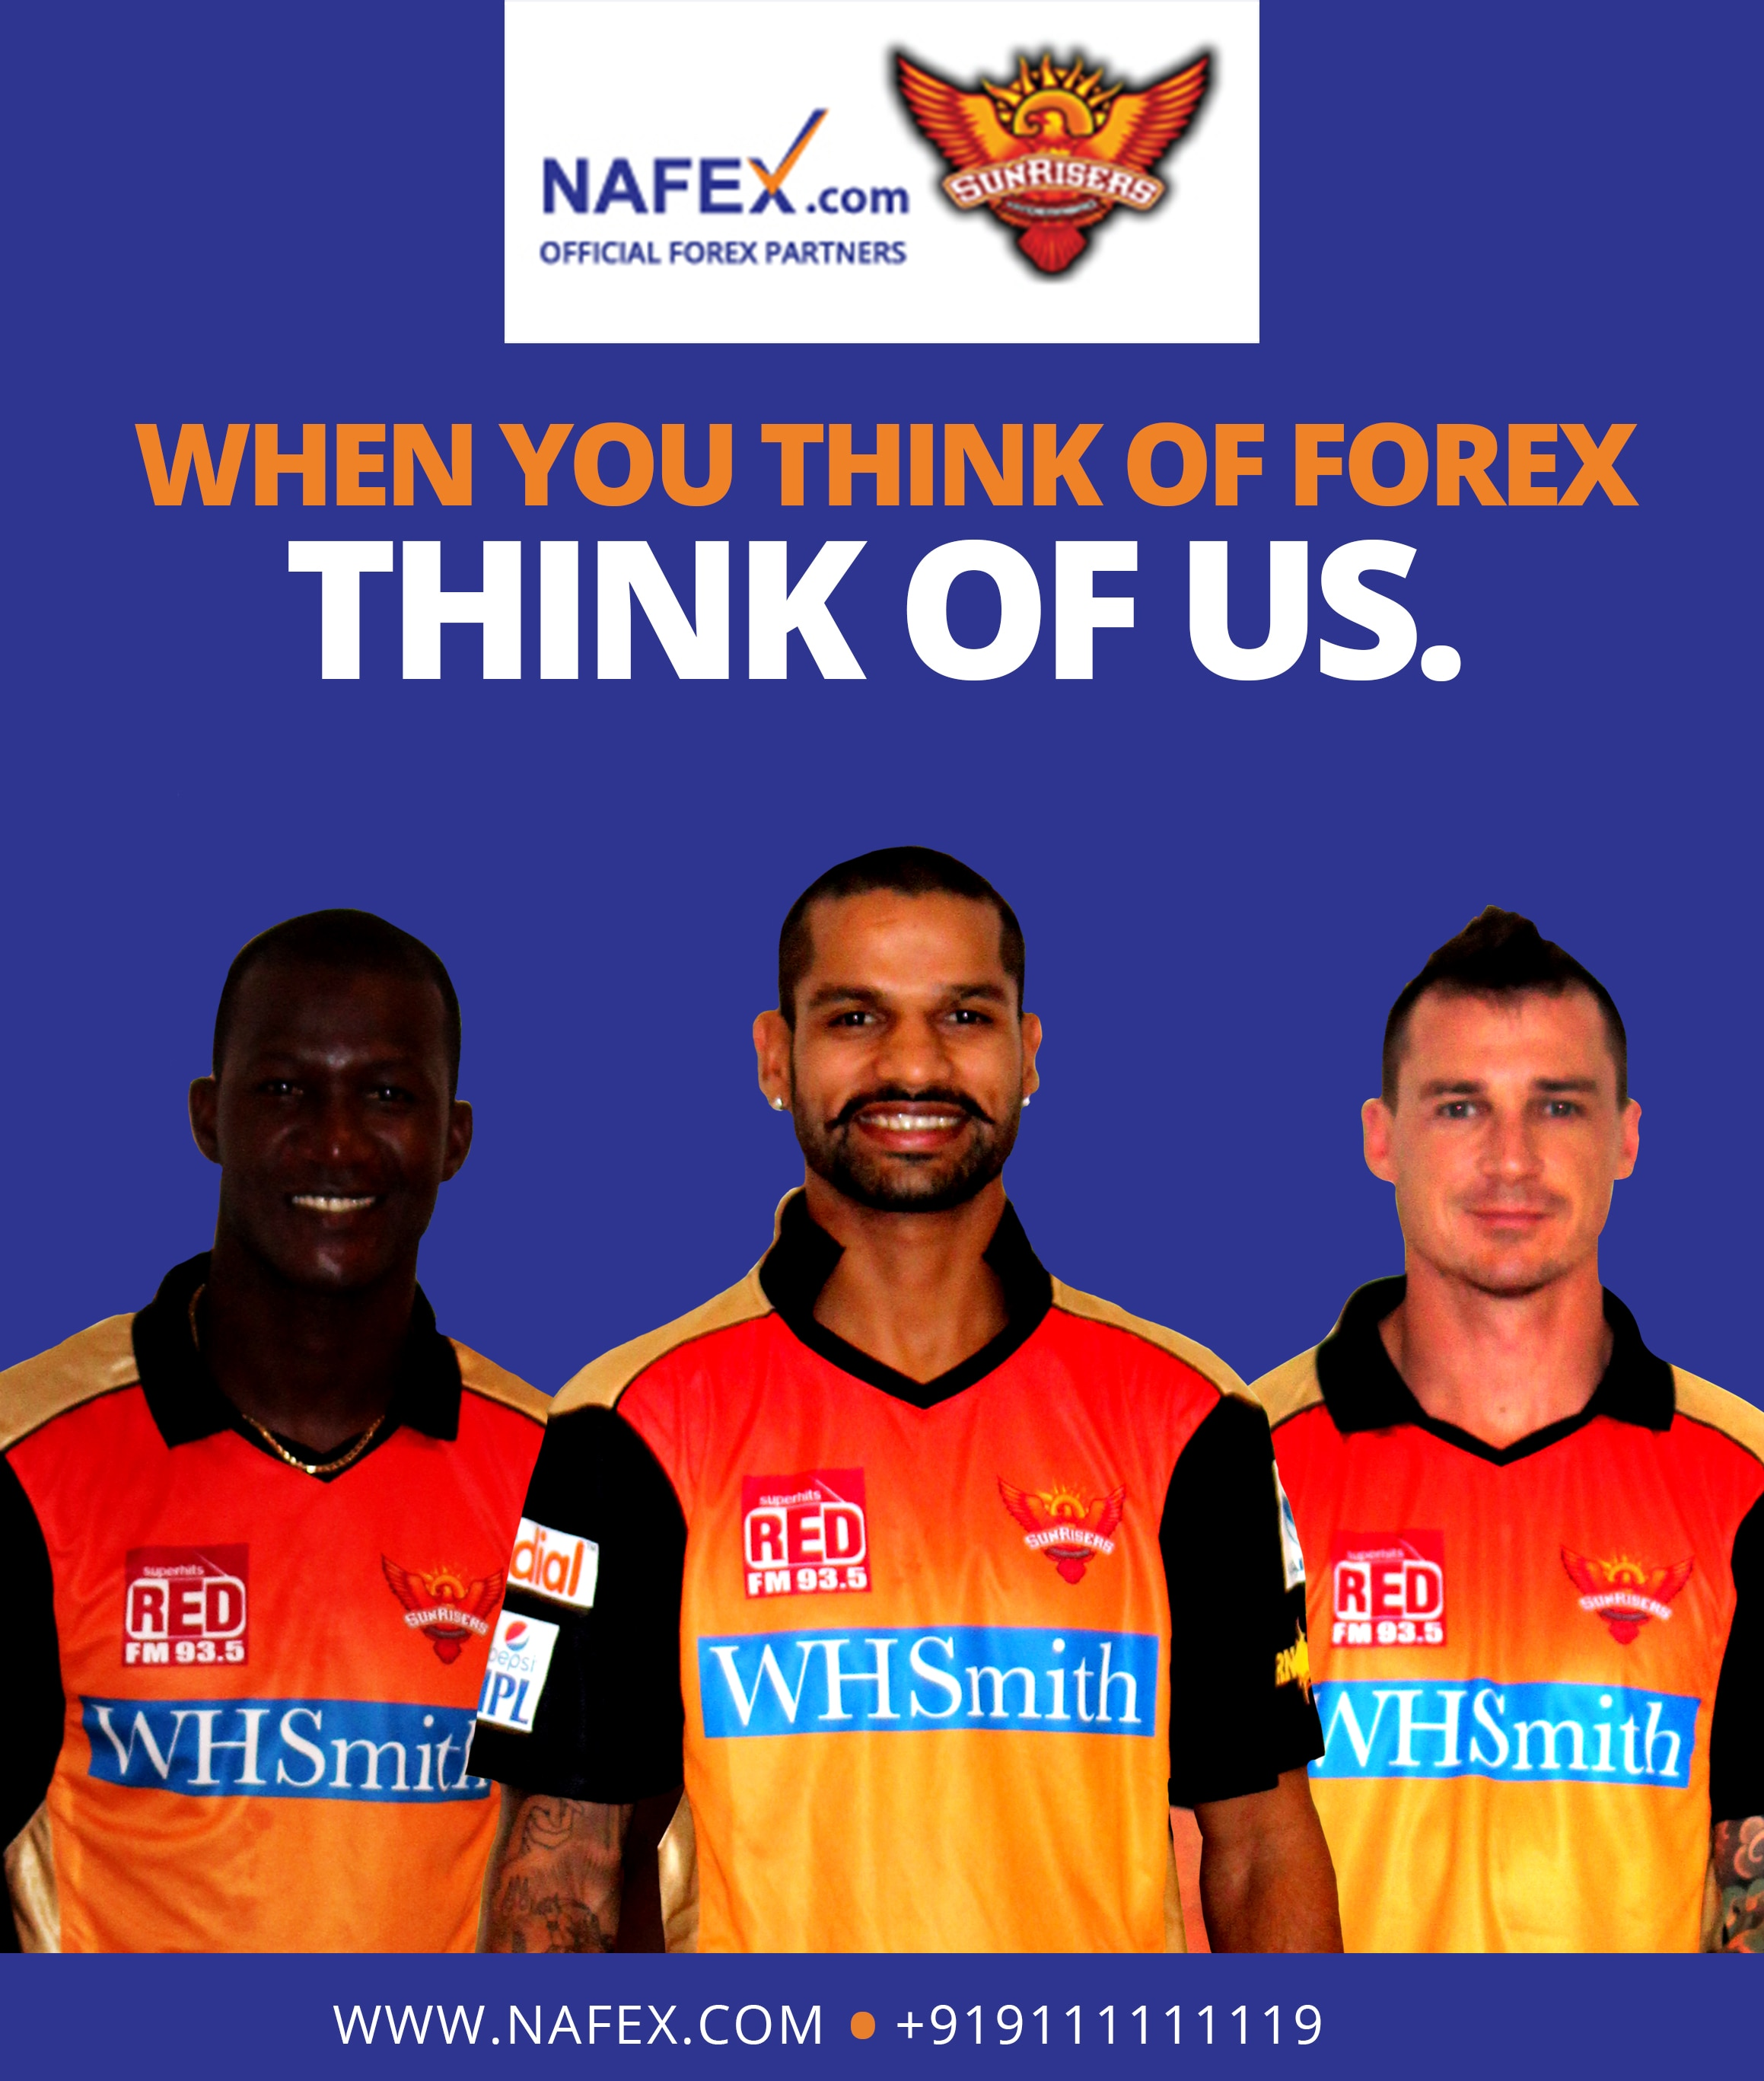 Nafex - Wadala Foreign Currency Exchange Dealers AgentsWadala, Online Travellers Cheque & Forex Prepaid Card